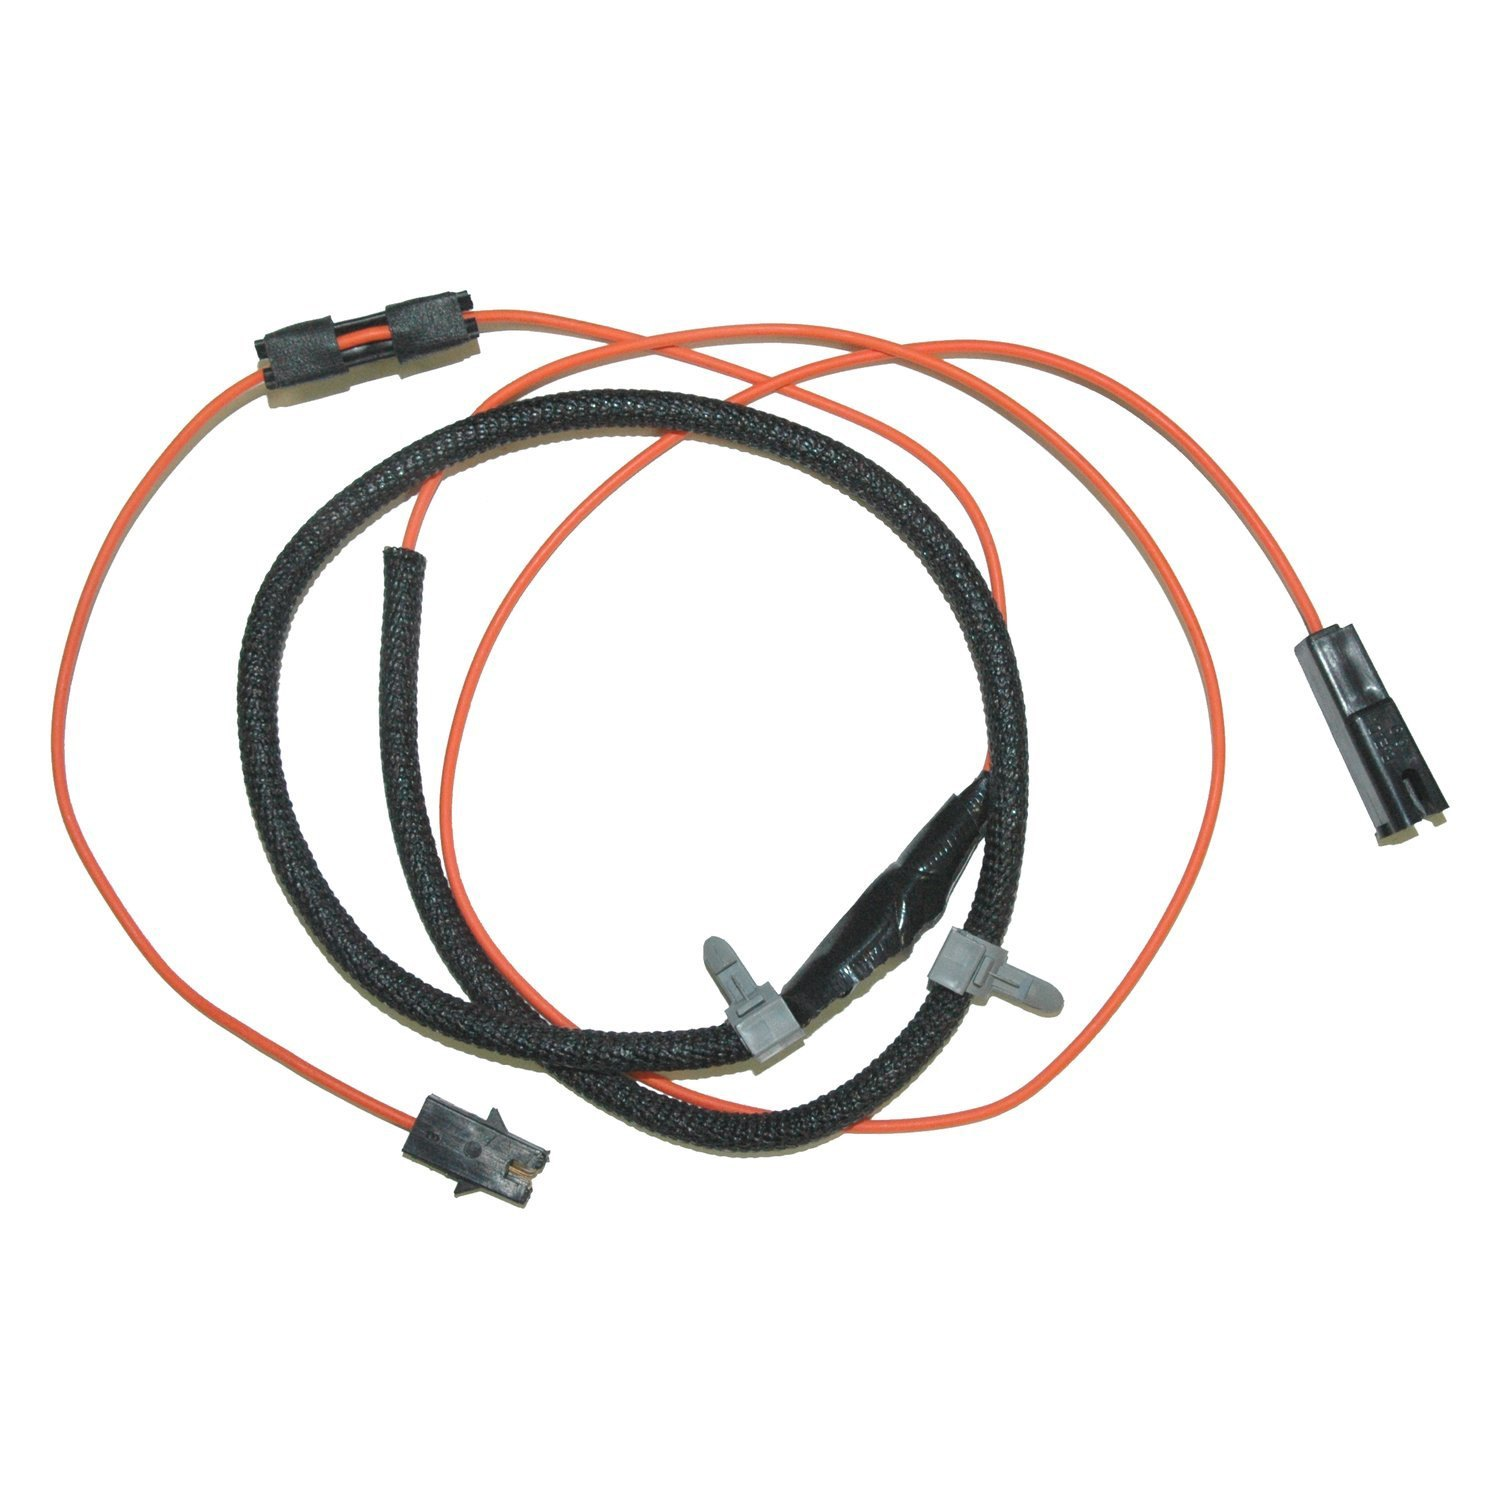 14535 lectric limited® 14535 trunk light extension wiring harness